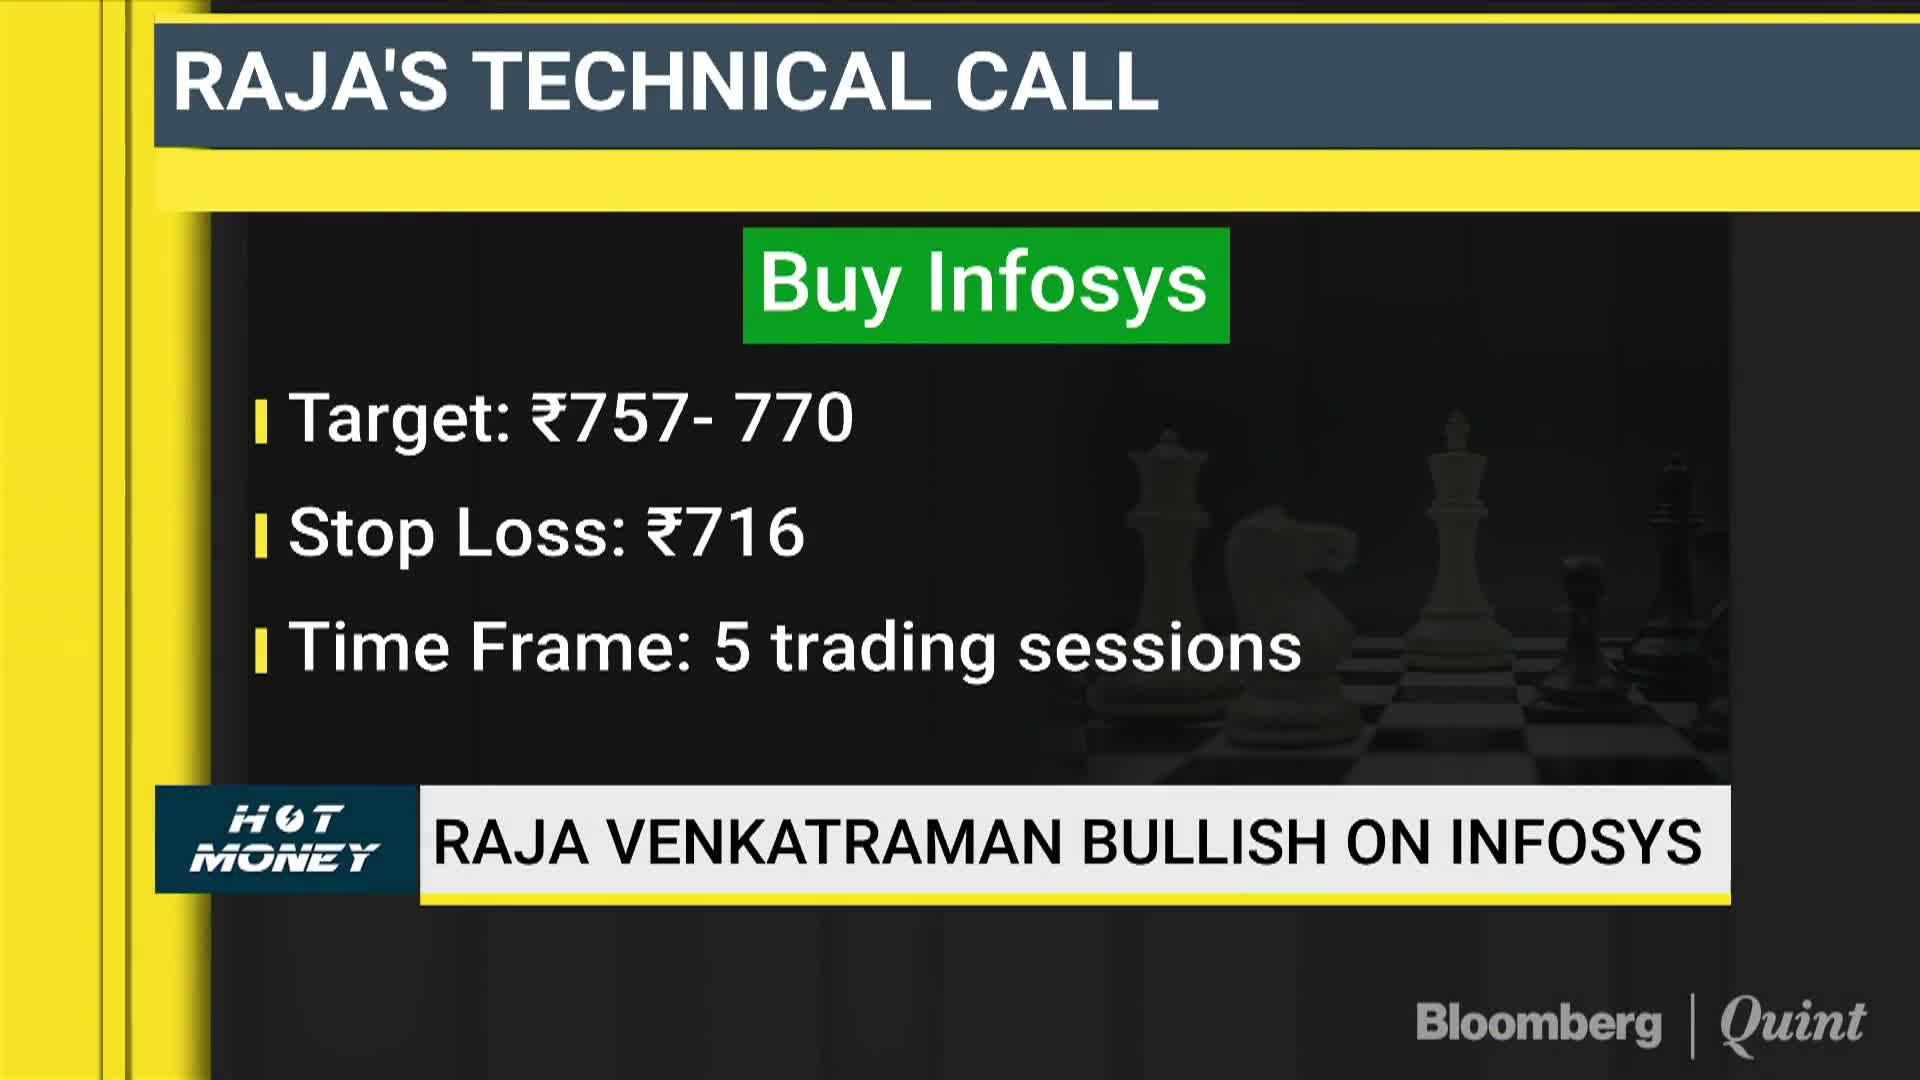 Rajas Technical View On Infosys